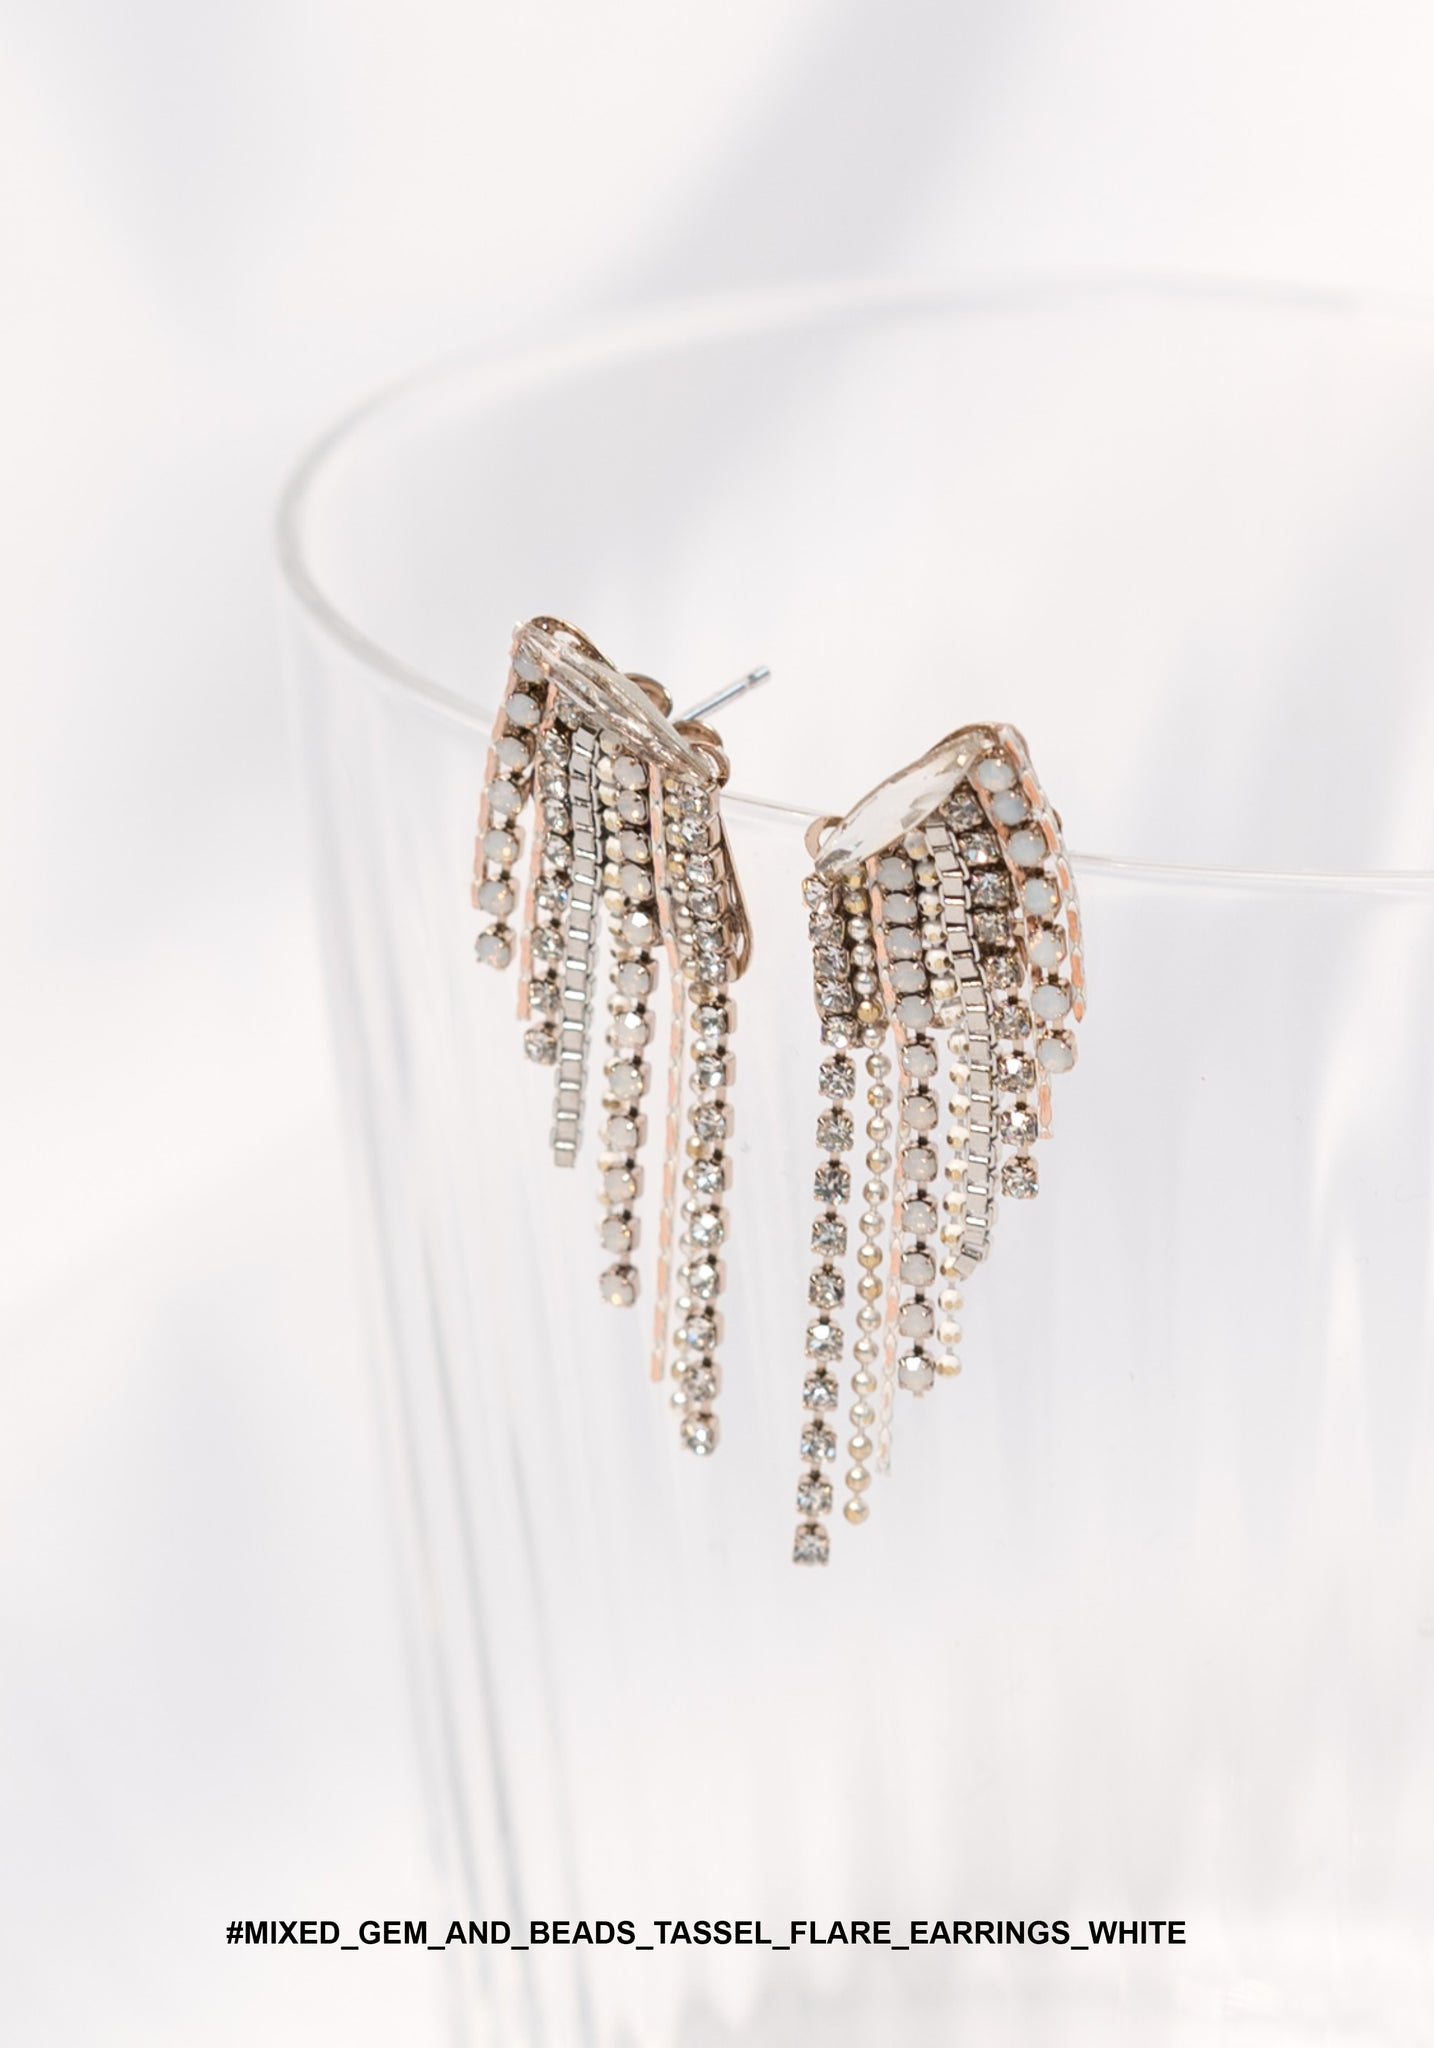 Mixed Gem And Beads Tassel Flare Earrings White - whoami